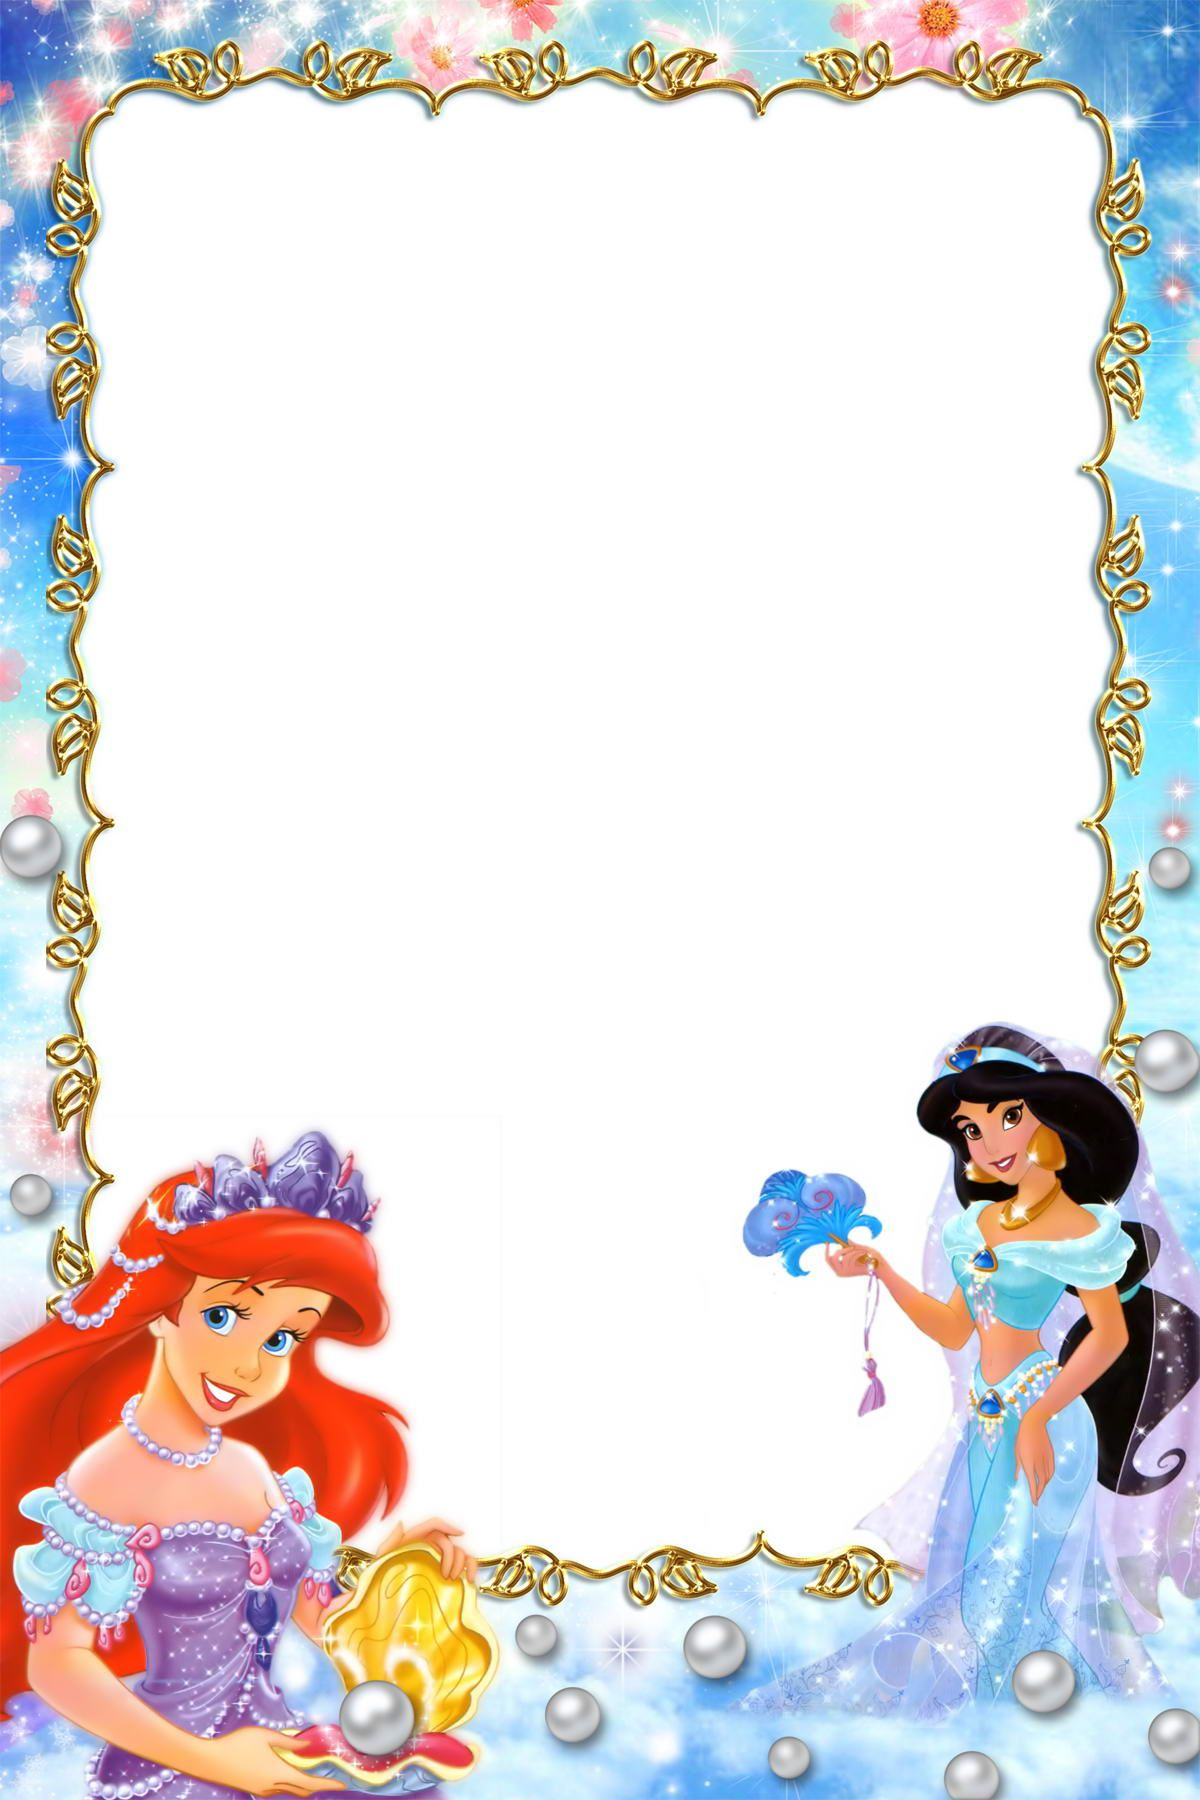 Border Design Disney Character : Princess border frames pictures disney printables